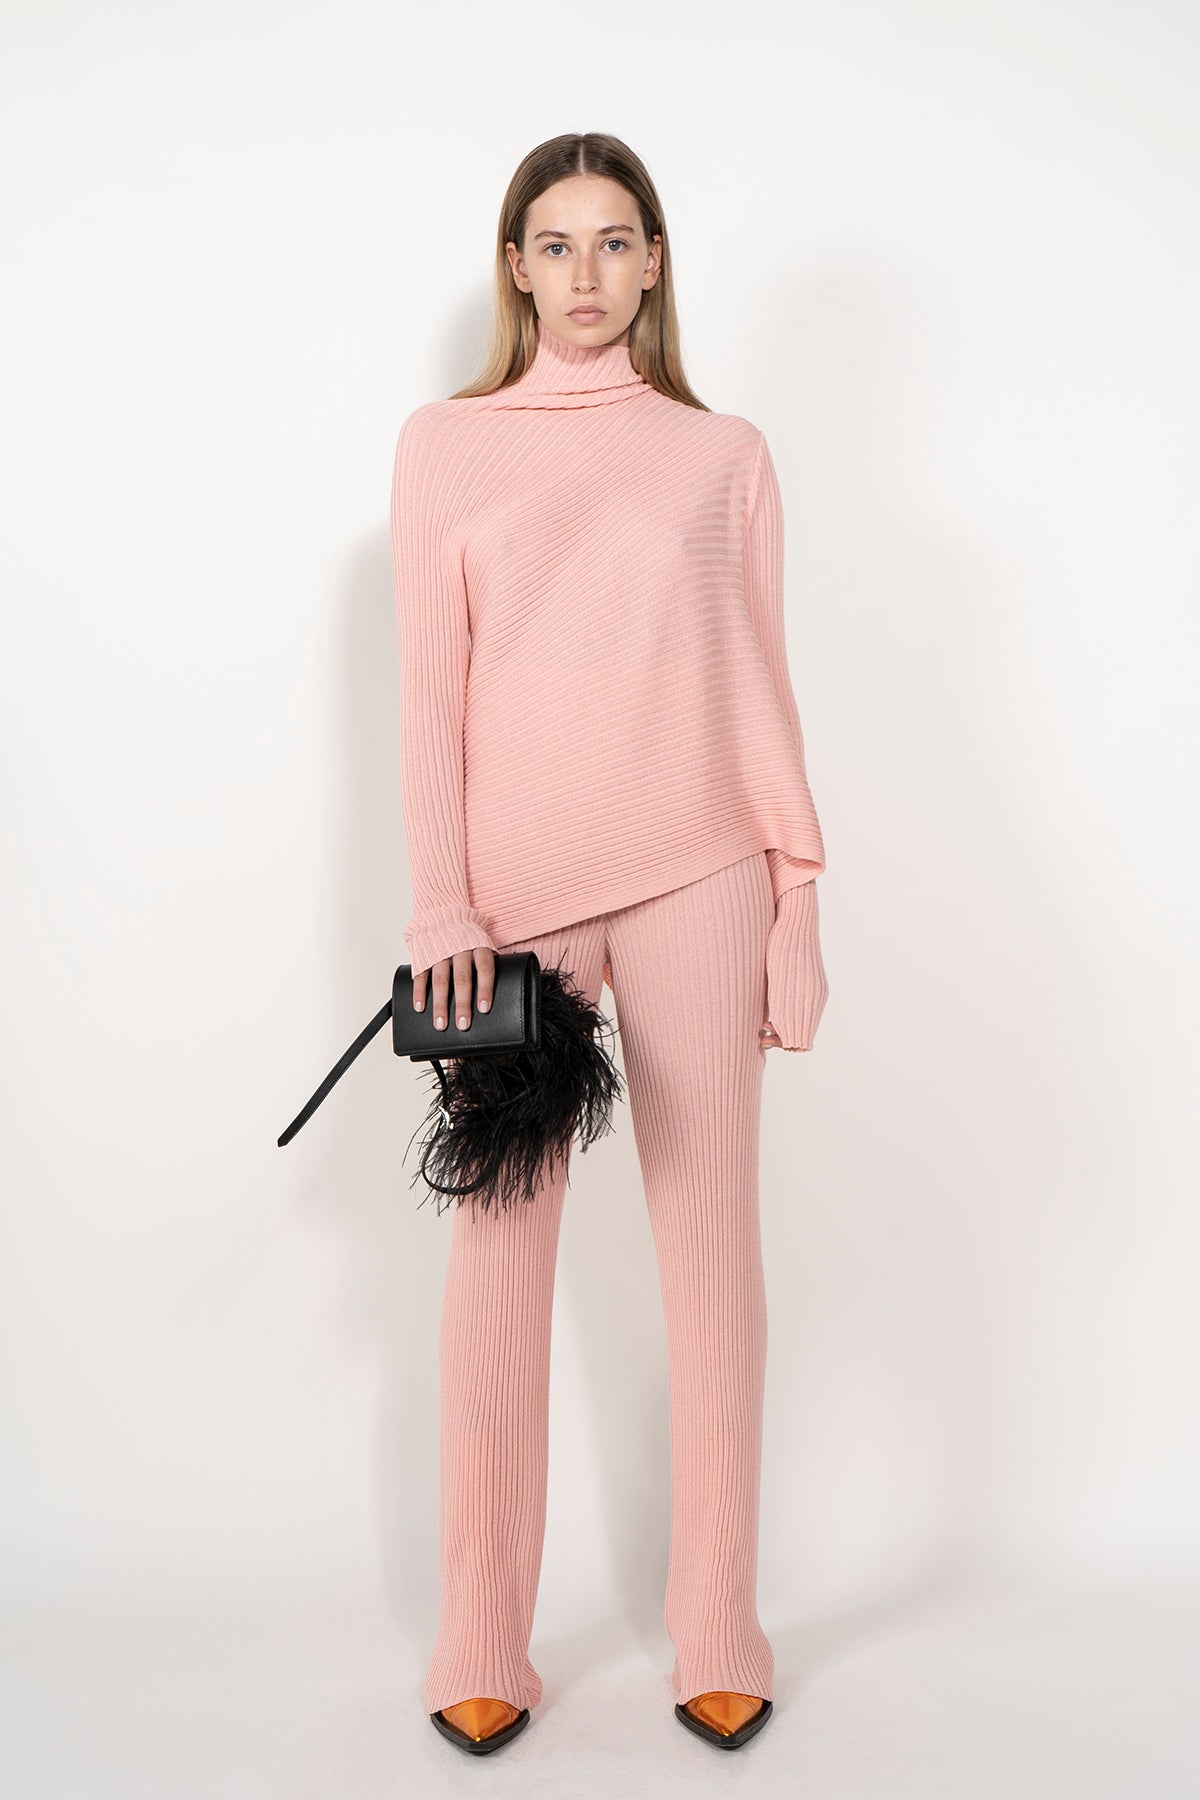 PINK KNITTED TROUSERS